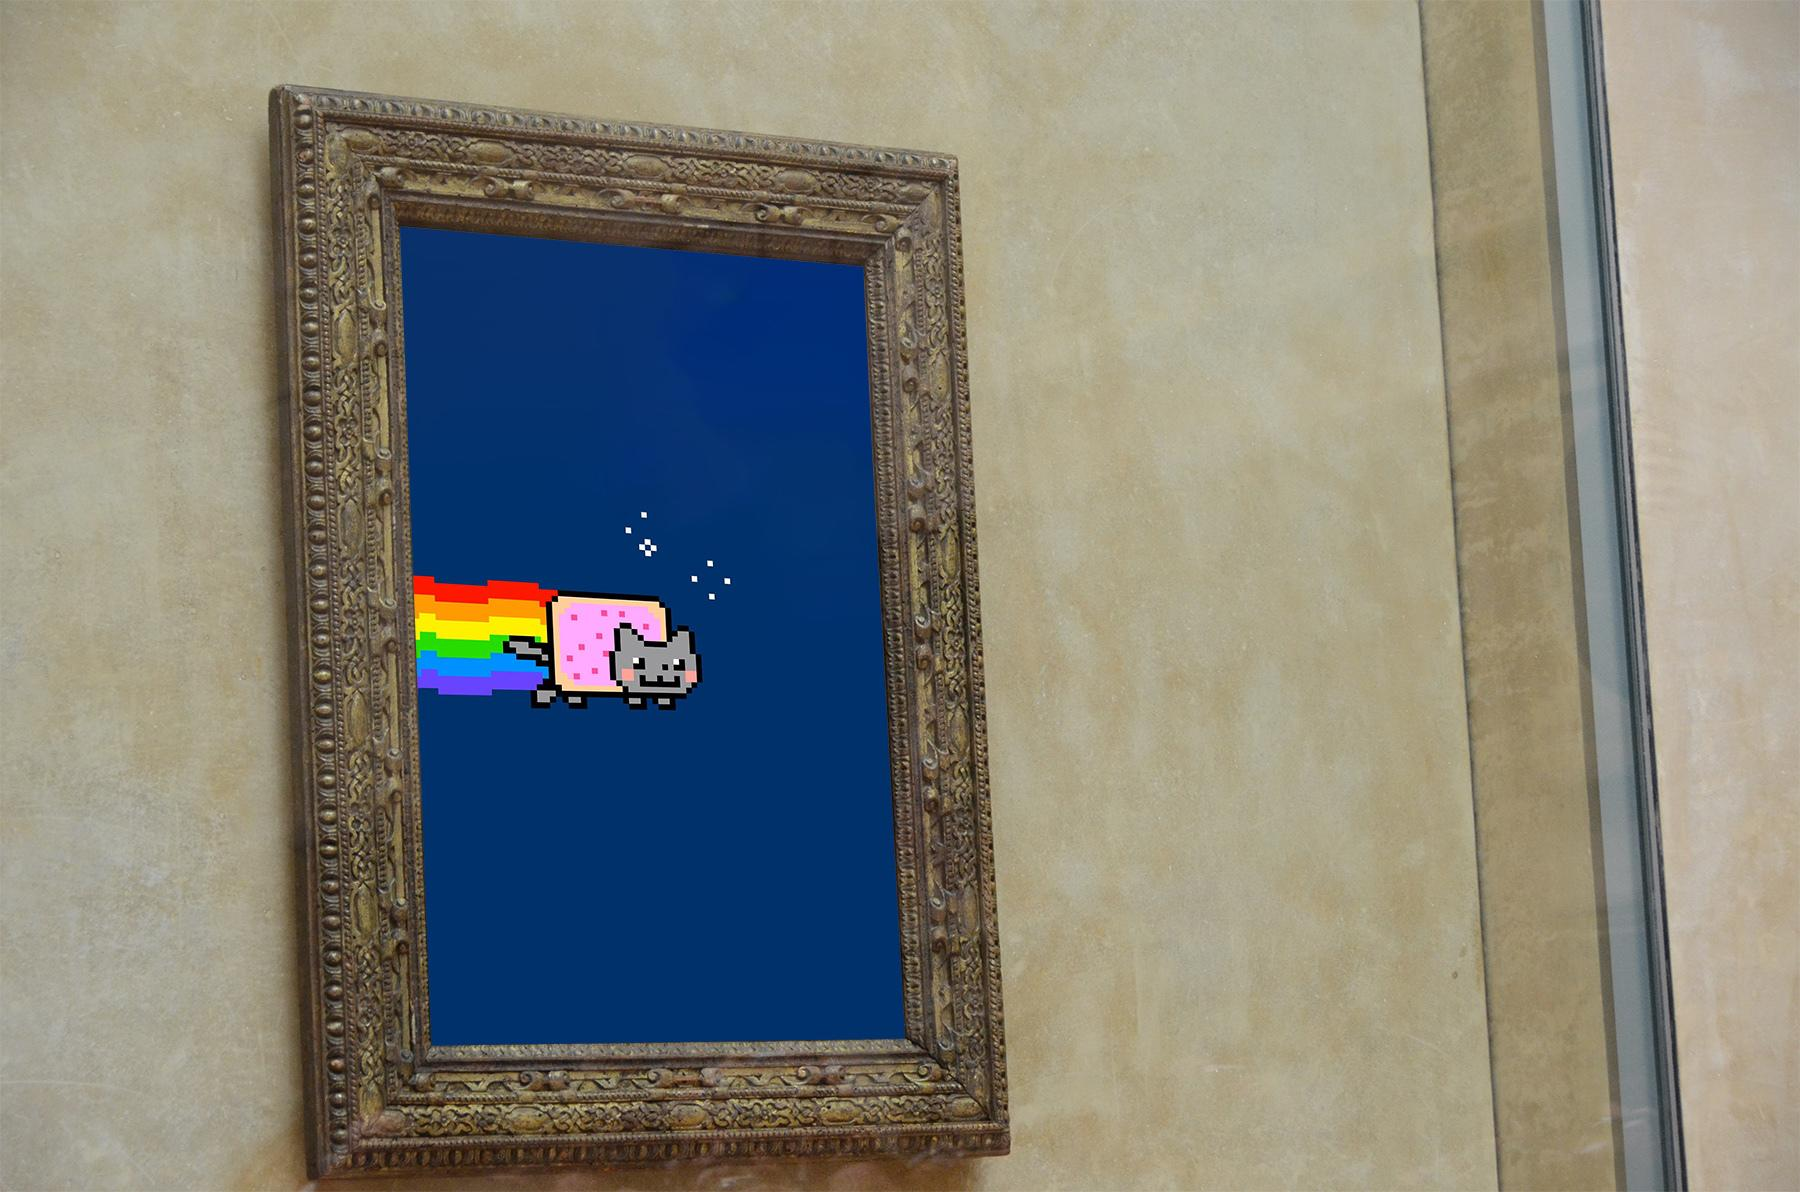 Artist-created image of Nyan Cat hung in place of the Mona Lisa.